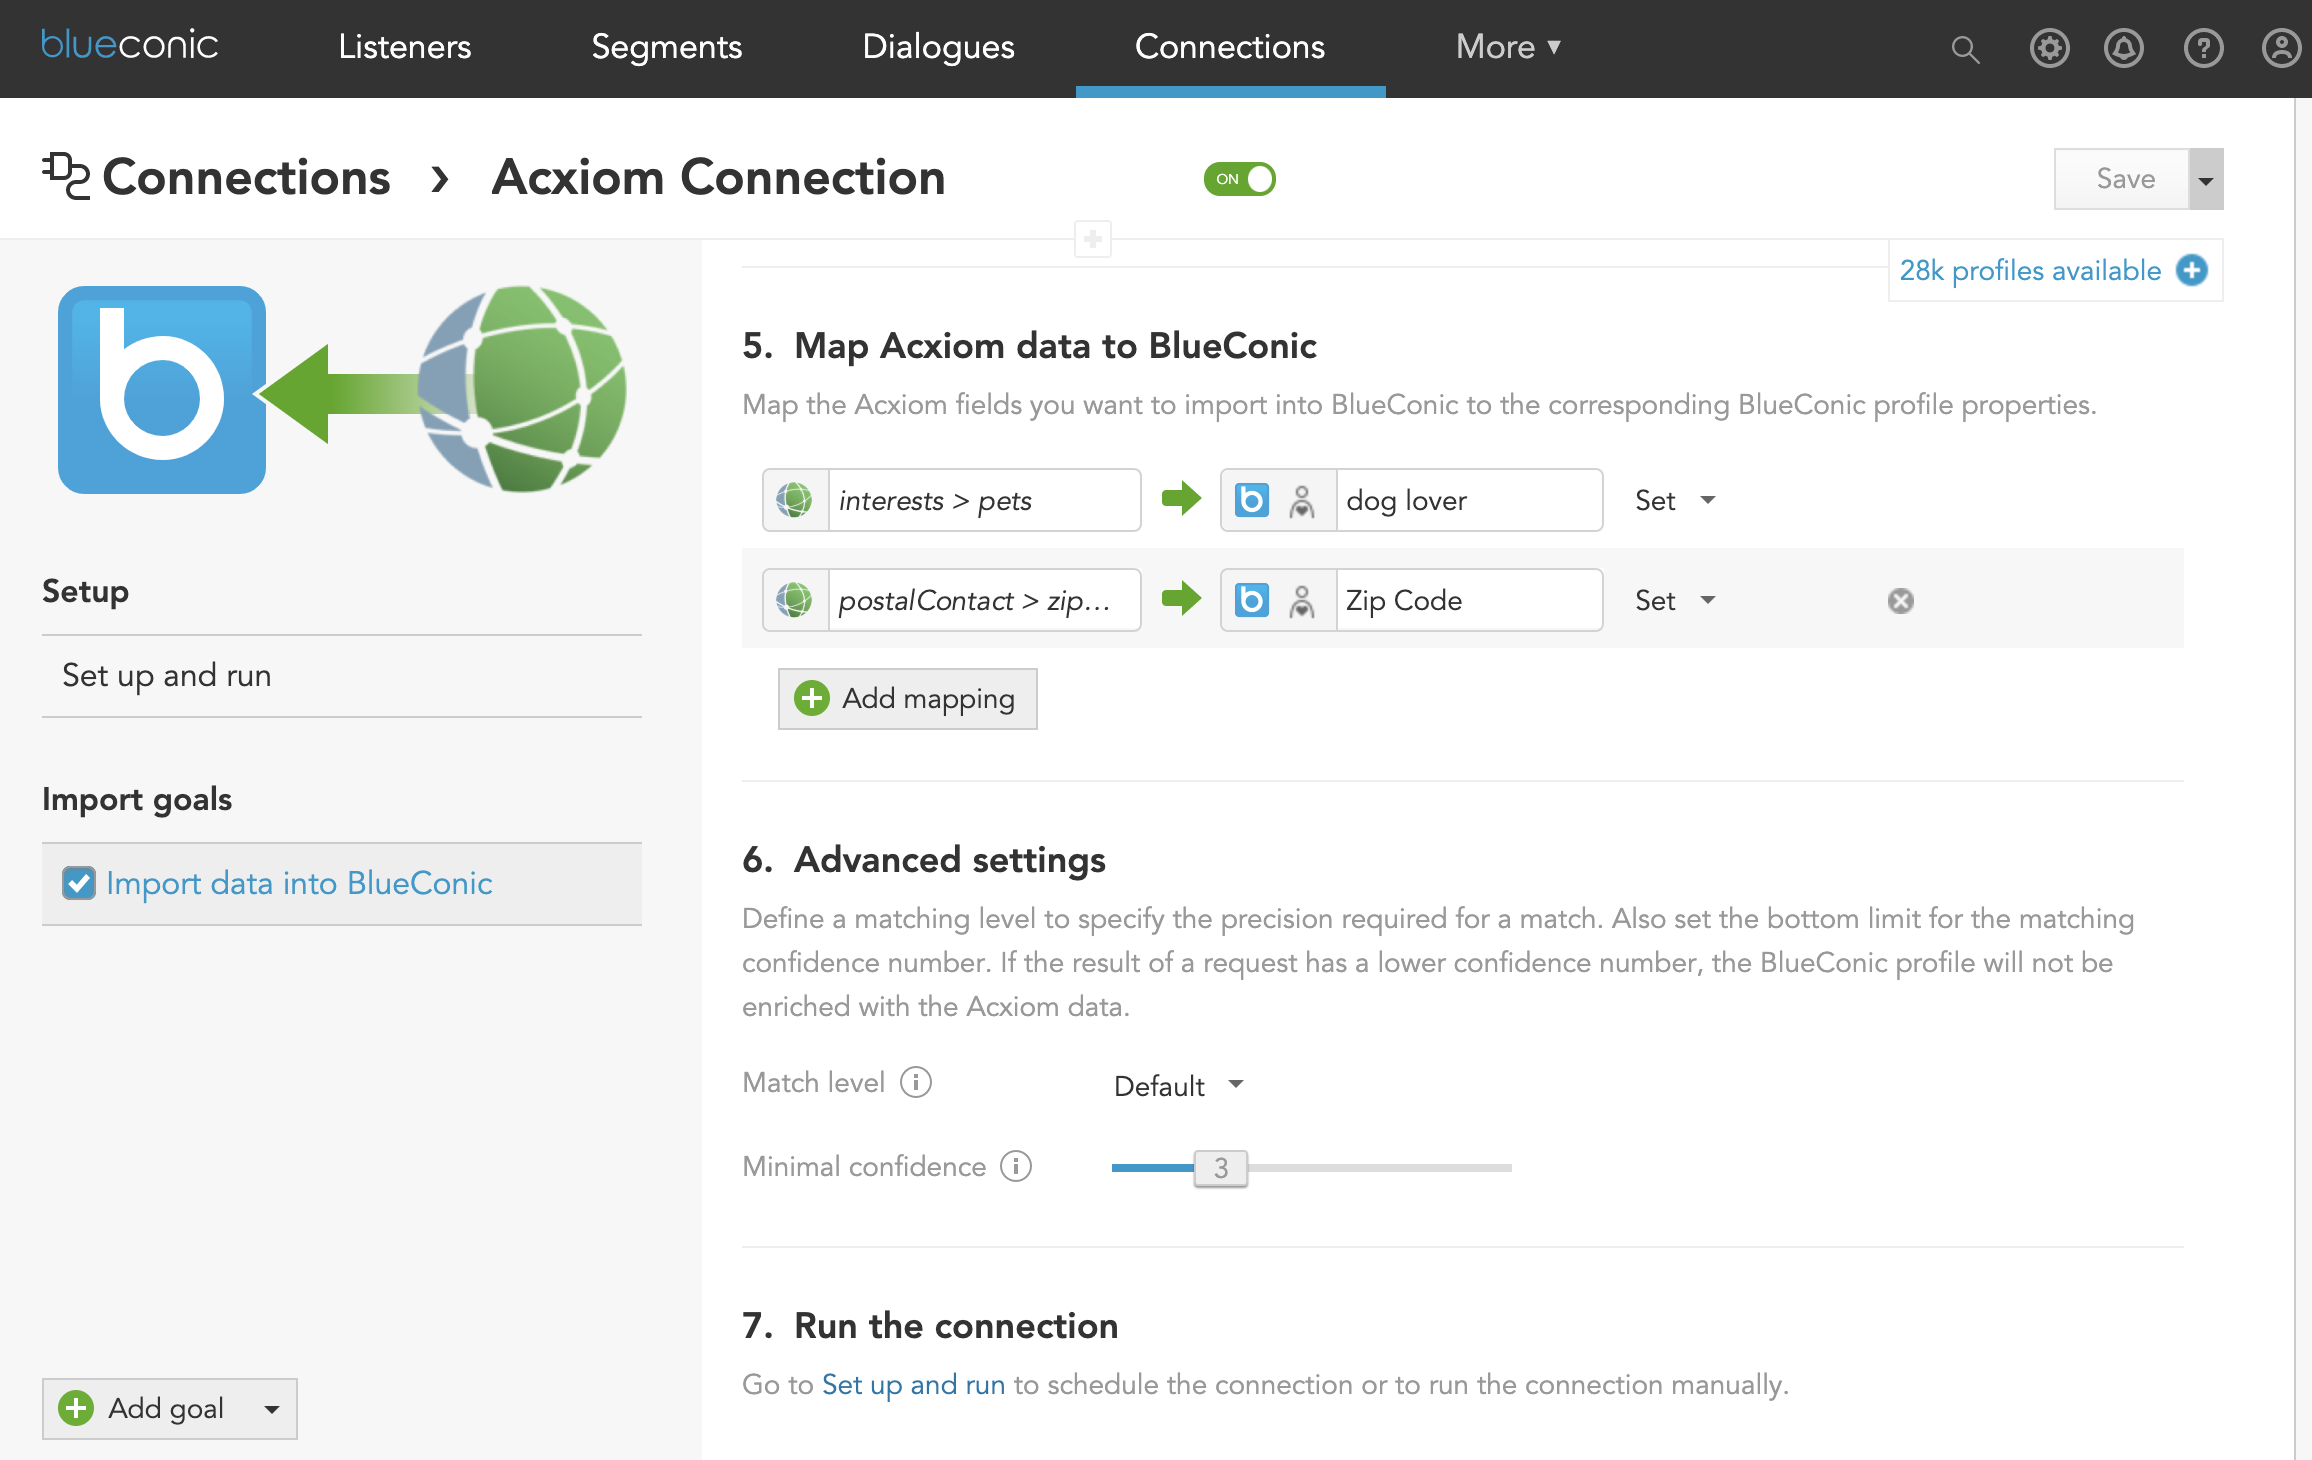 How to exchange customer profile data between BlueConic, martech systems, and Acxiom